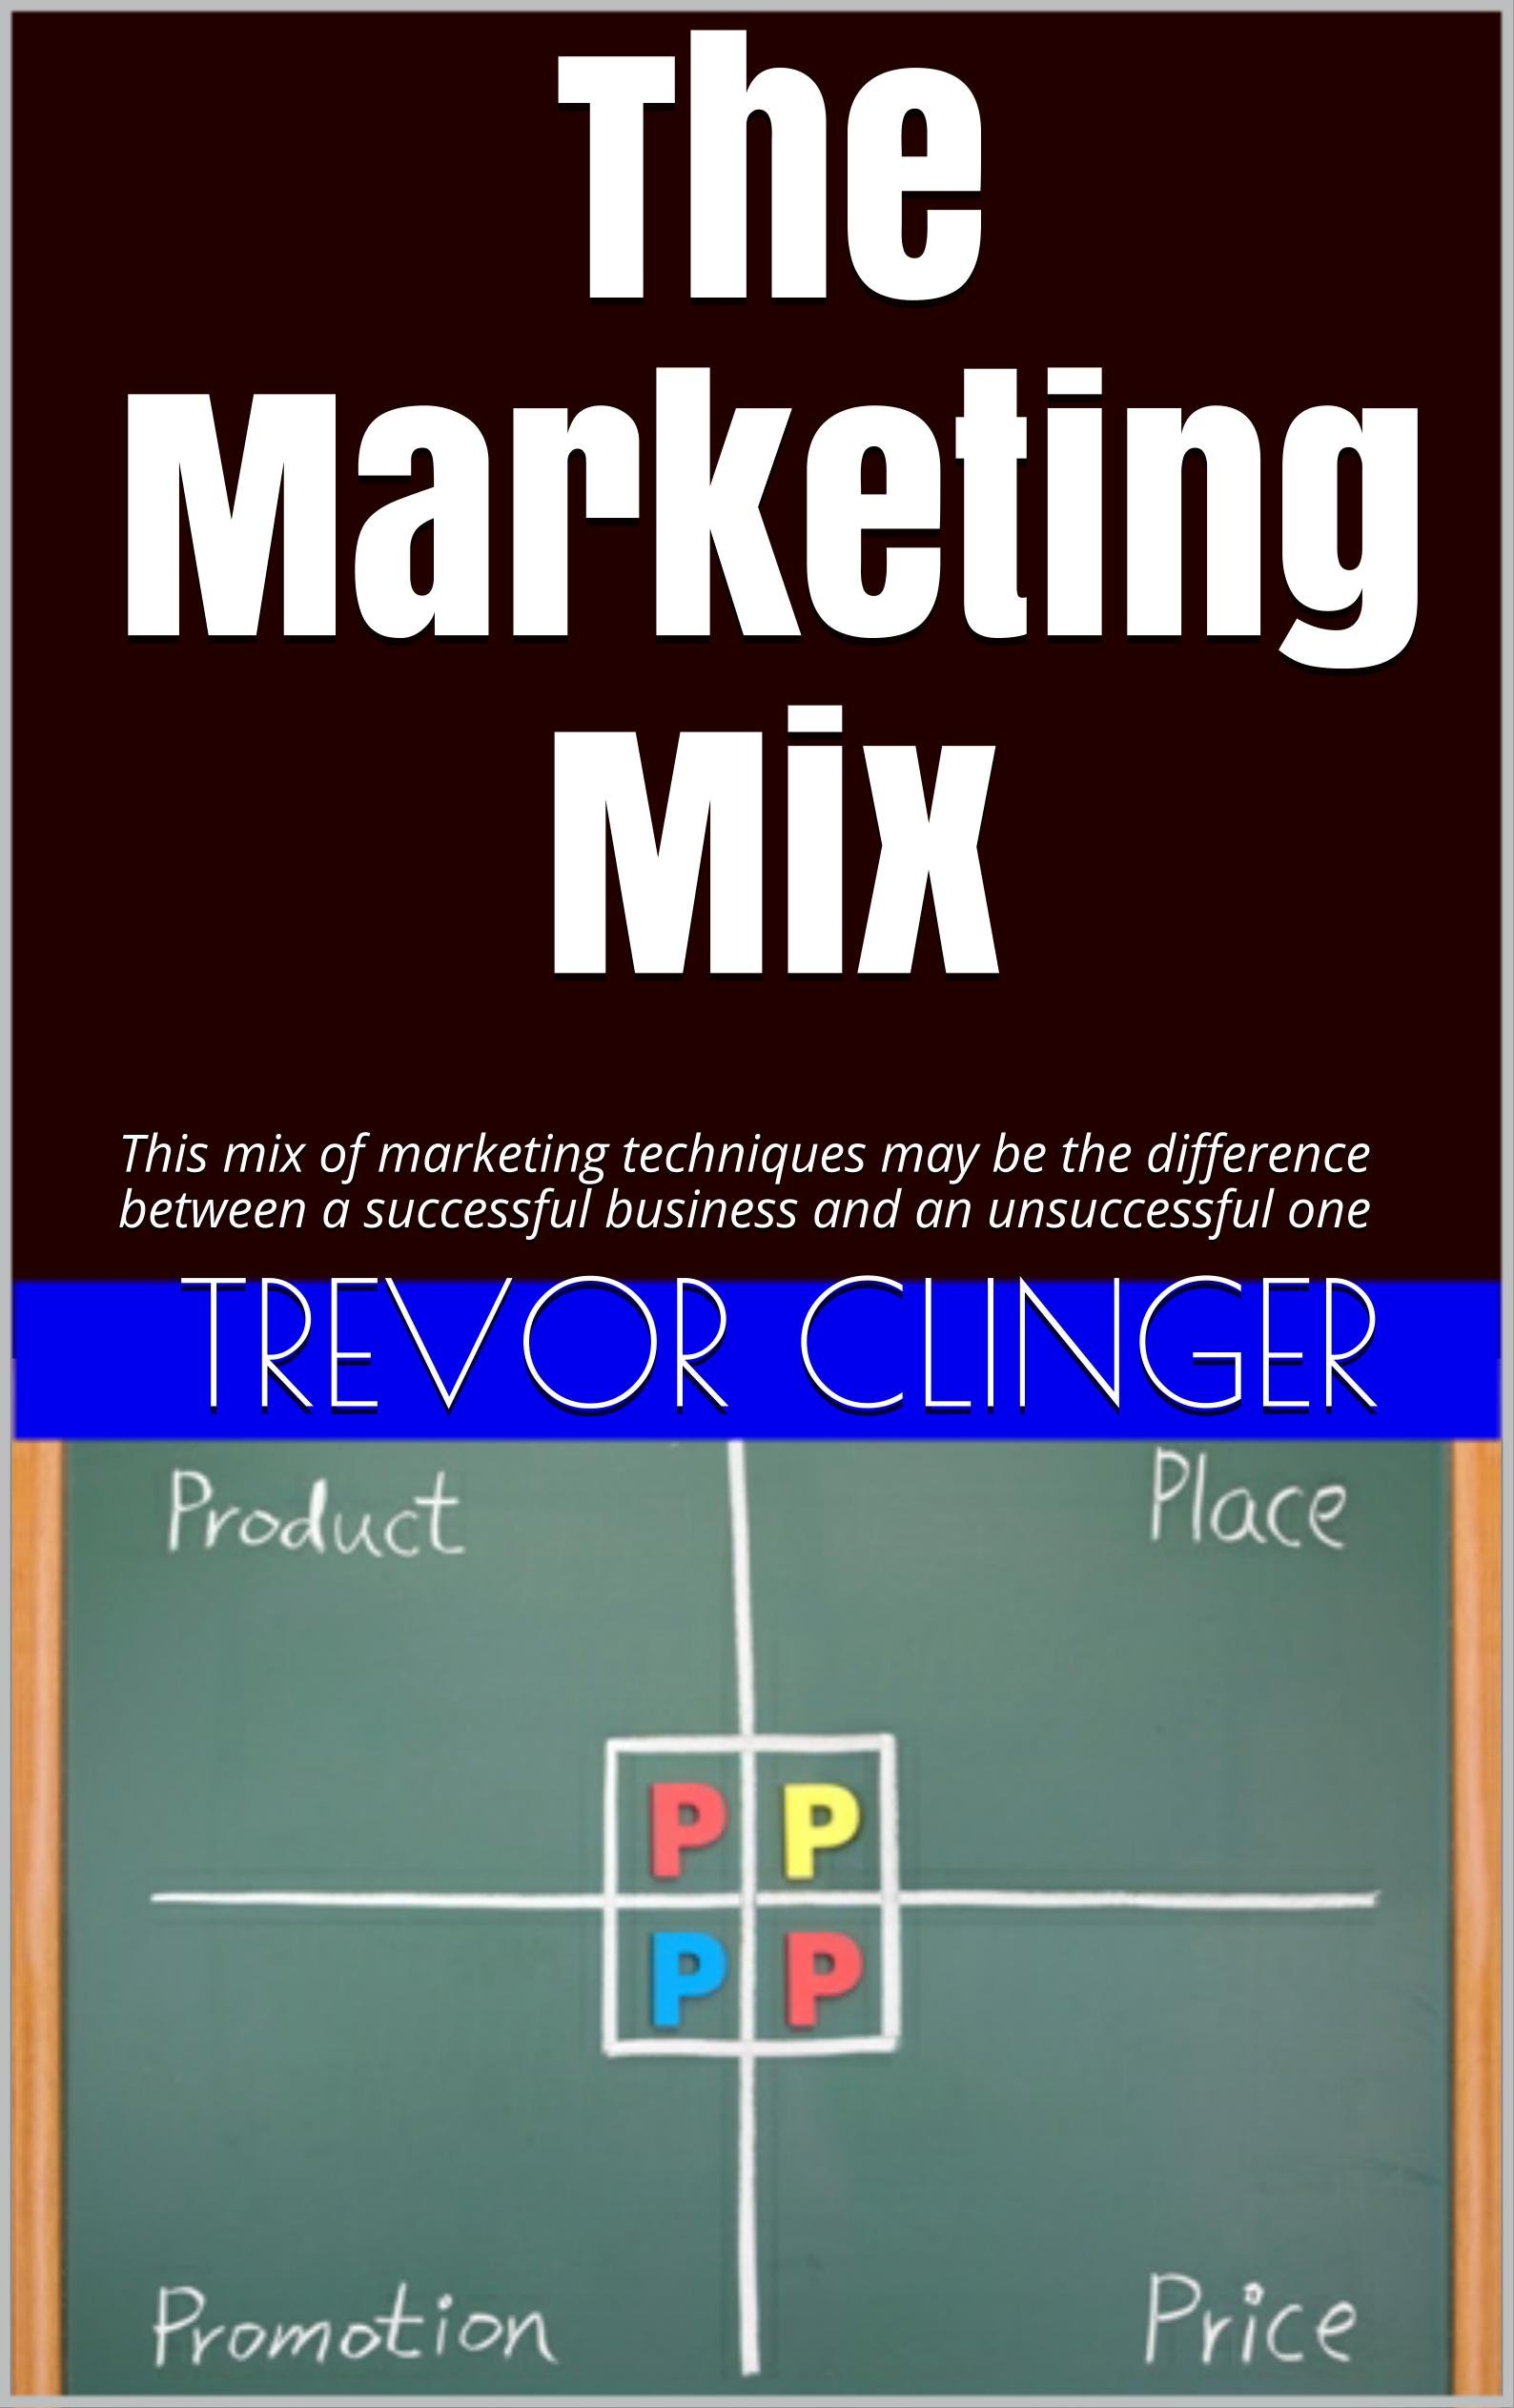 The Marketing Mix: This mix of marketing techniques may be the difference between a successful business and an unsuccessful one